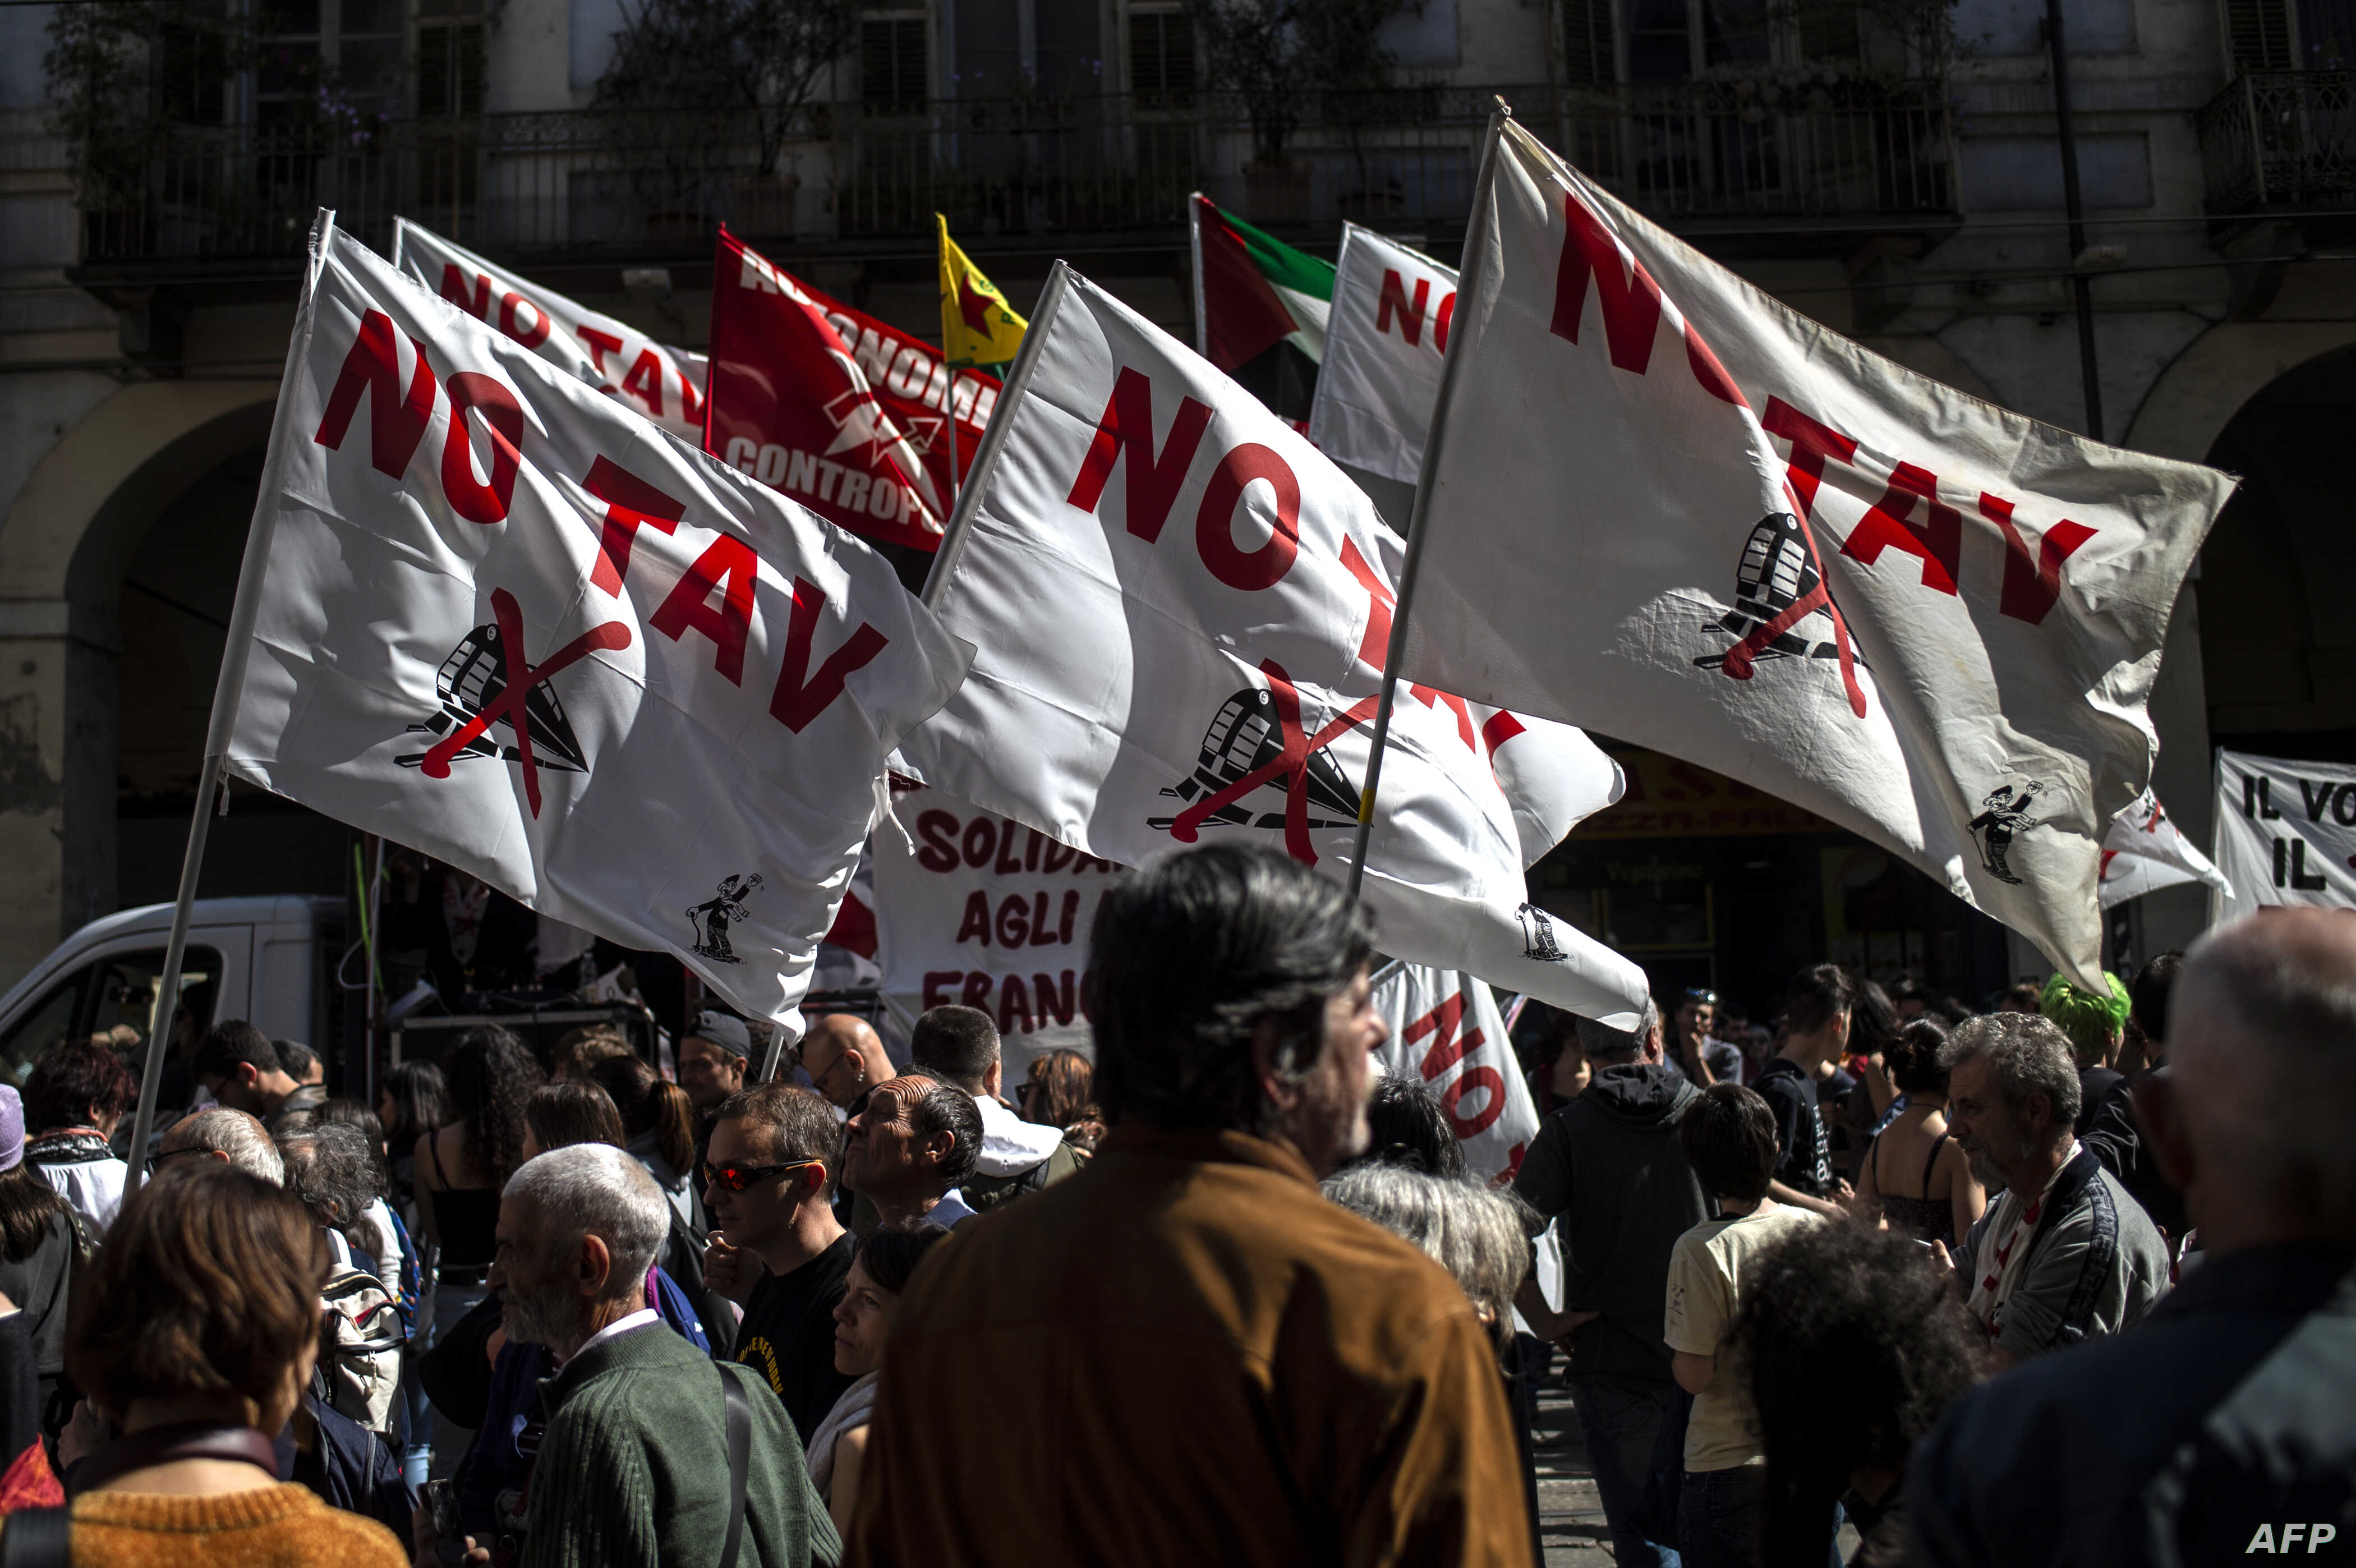 No Tav (No high speed train) demonstrators gather in Turin during one of several rallies against unemployment in Italy as people across the world mark May Day in Turin, May 1, 2019.